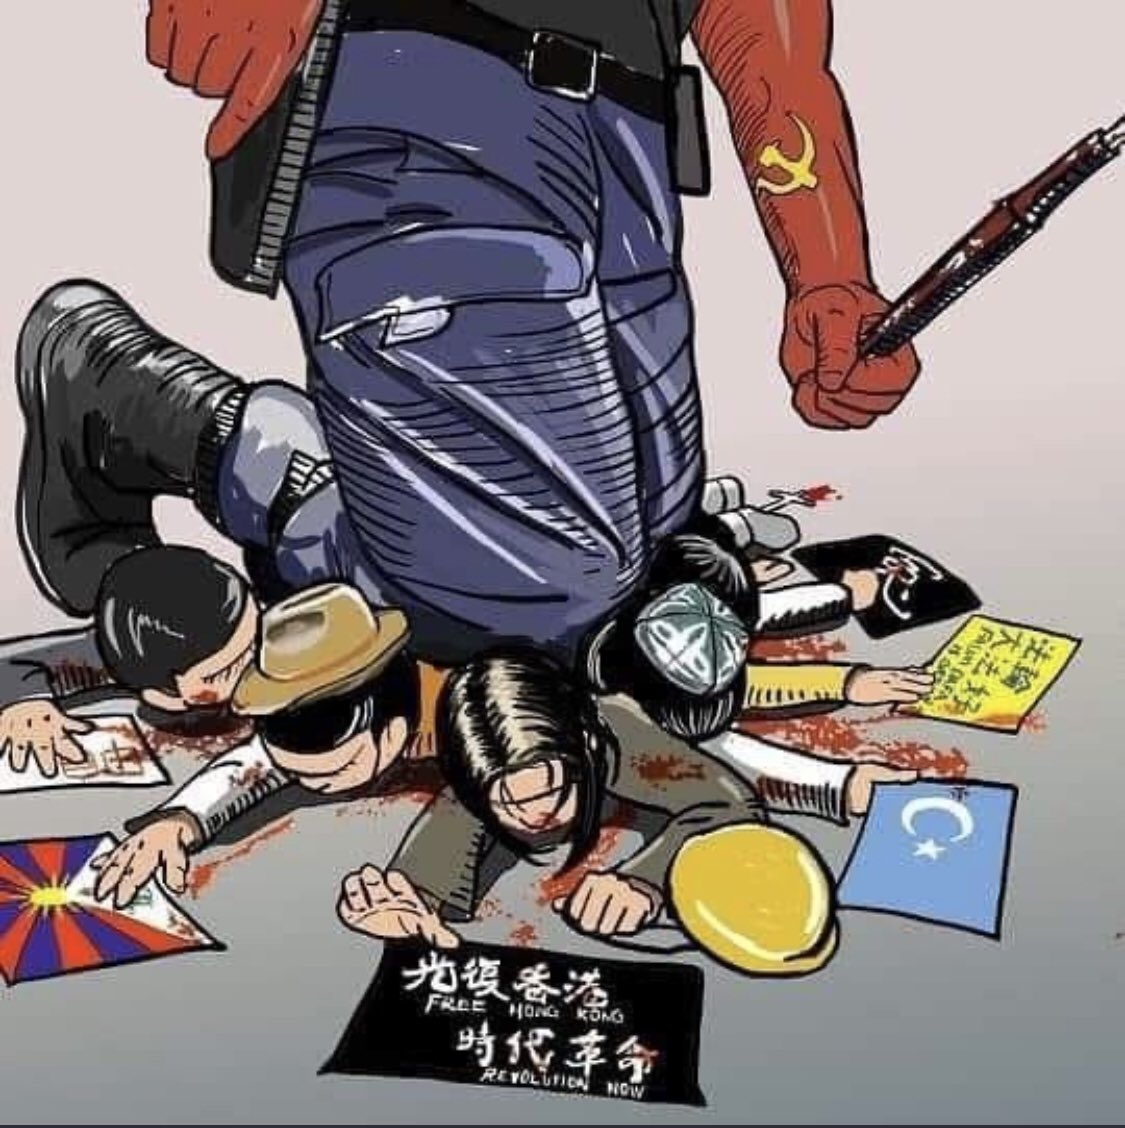 @DavidSweetMP @dorobou0 #CCPChina is the biggest thuggish country in the world! #AntiChinazi #China_is_terrorist #MakeChinaPay #FreeUyghurs #StandWithHongKong https://t.co/RkZDAL0Y30